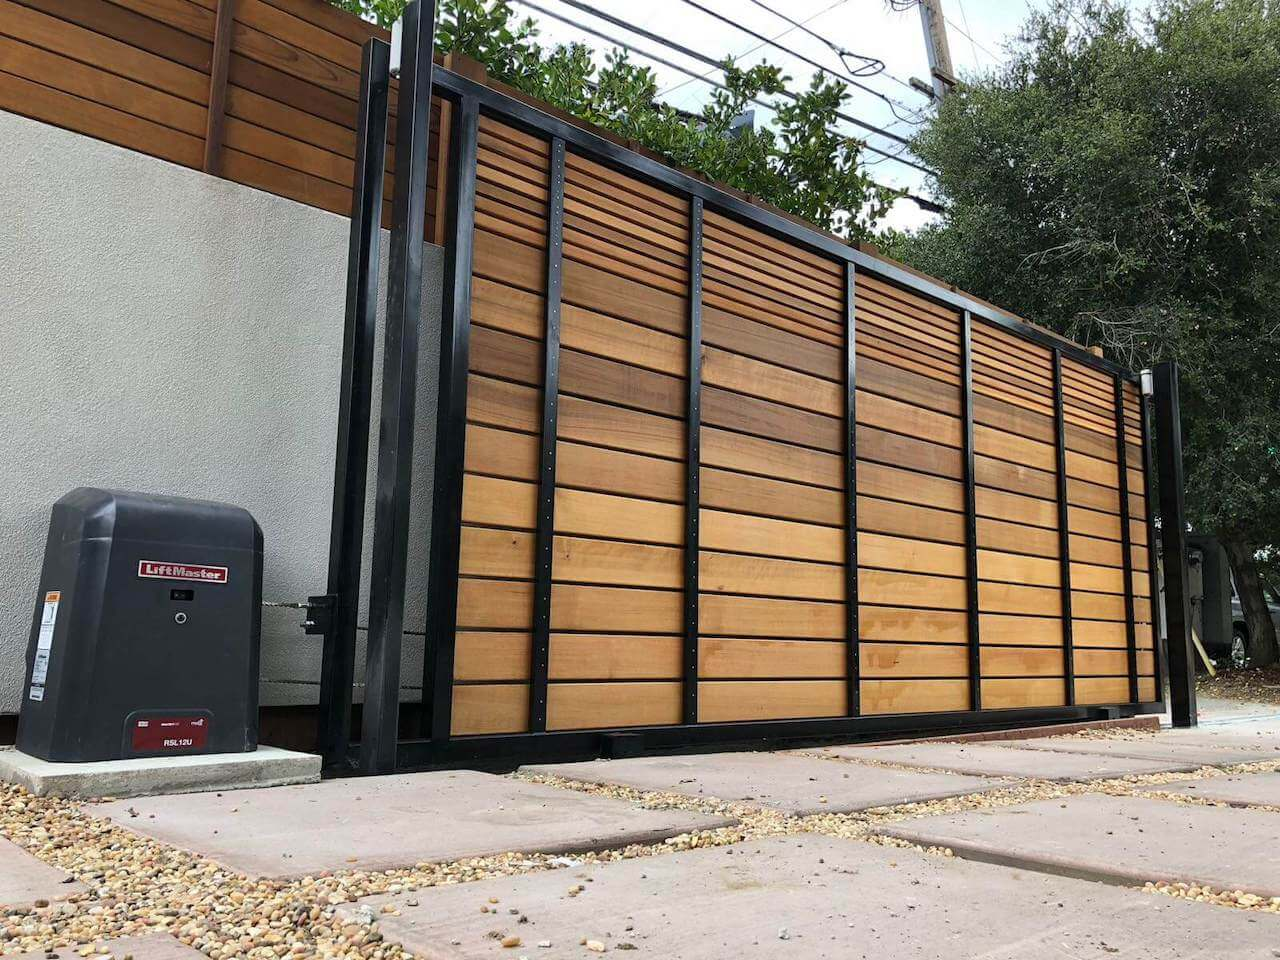 Best_Automatic_Gate_company_San_jose_CA